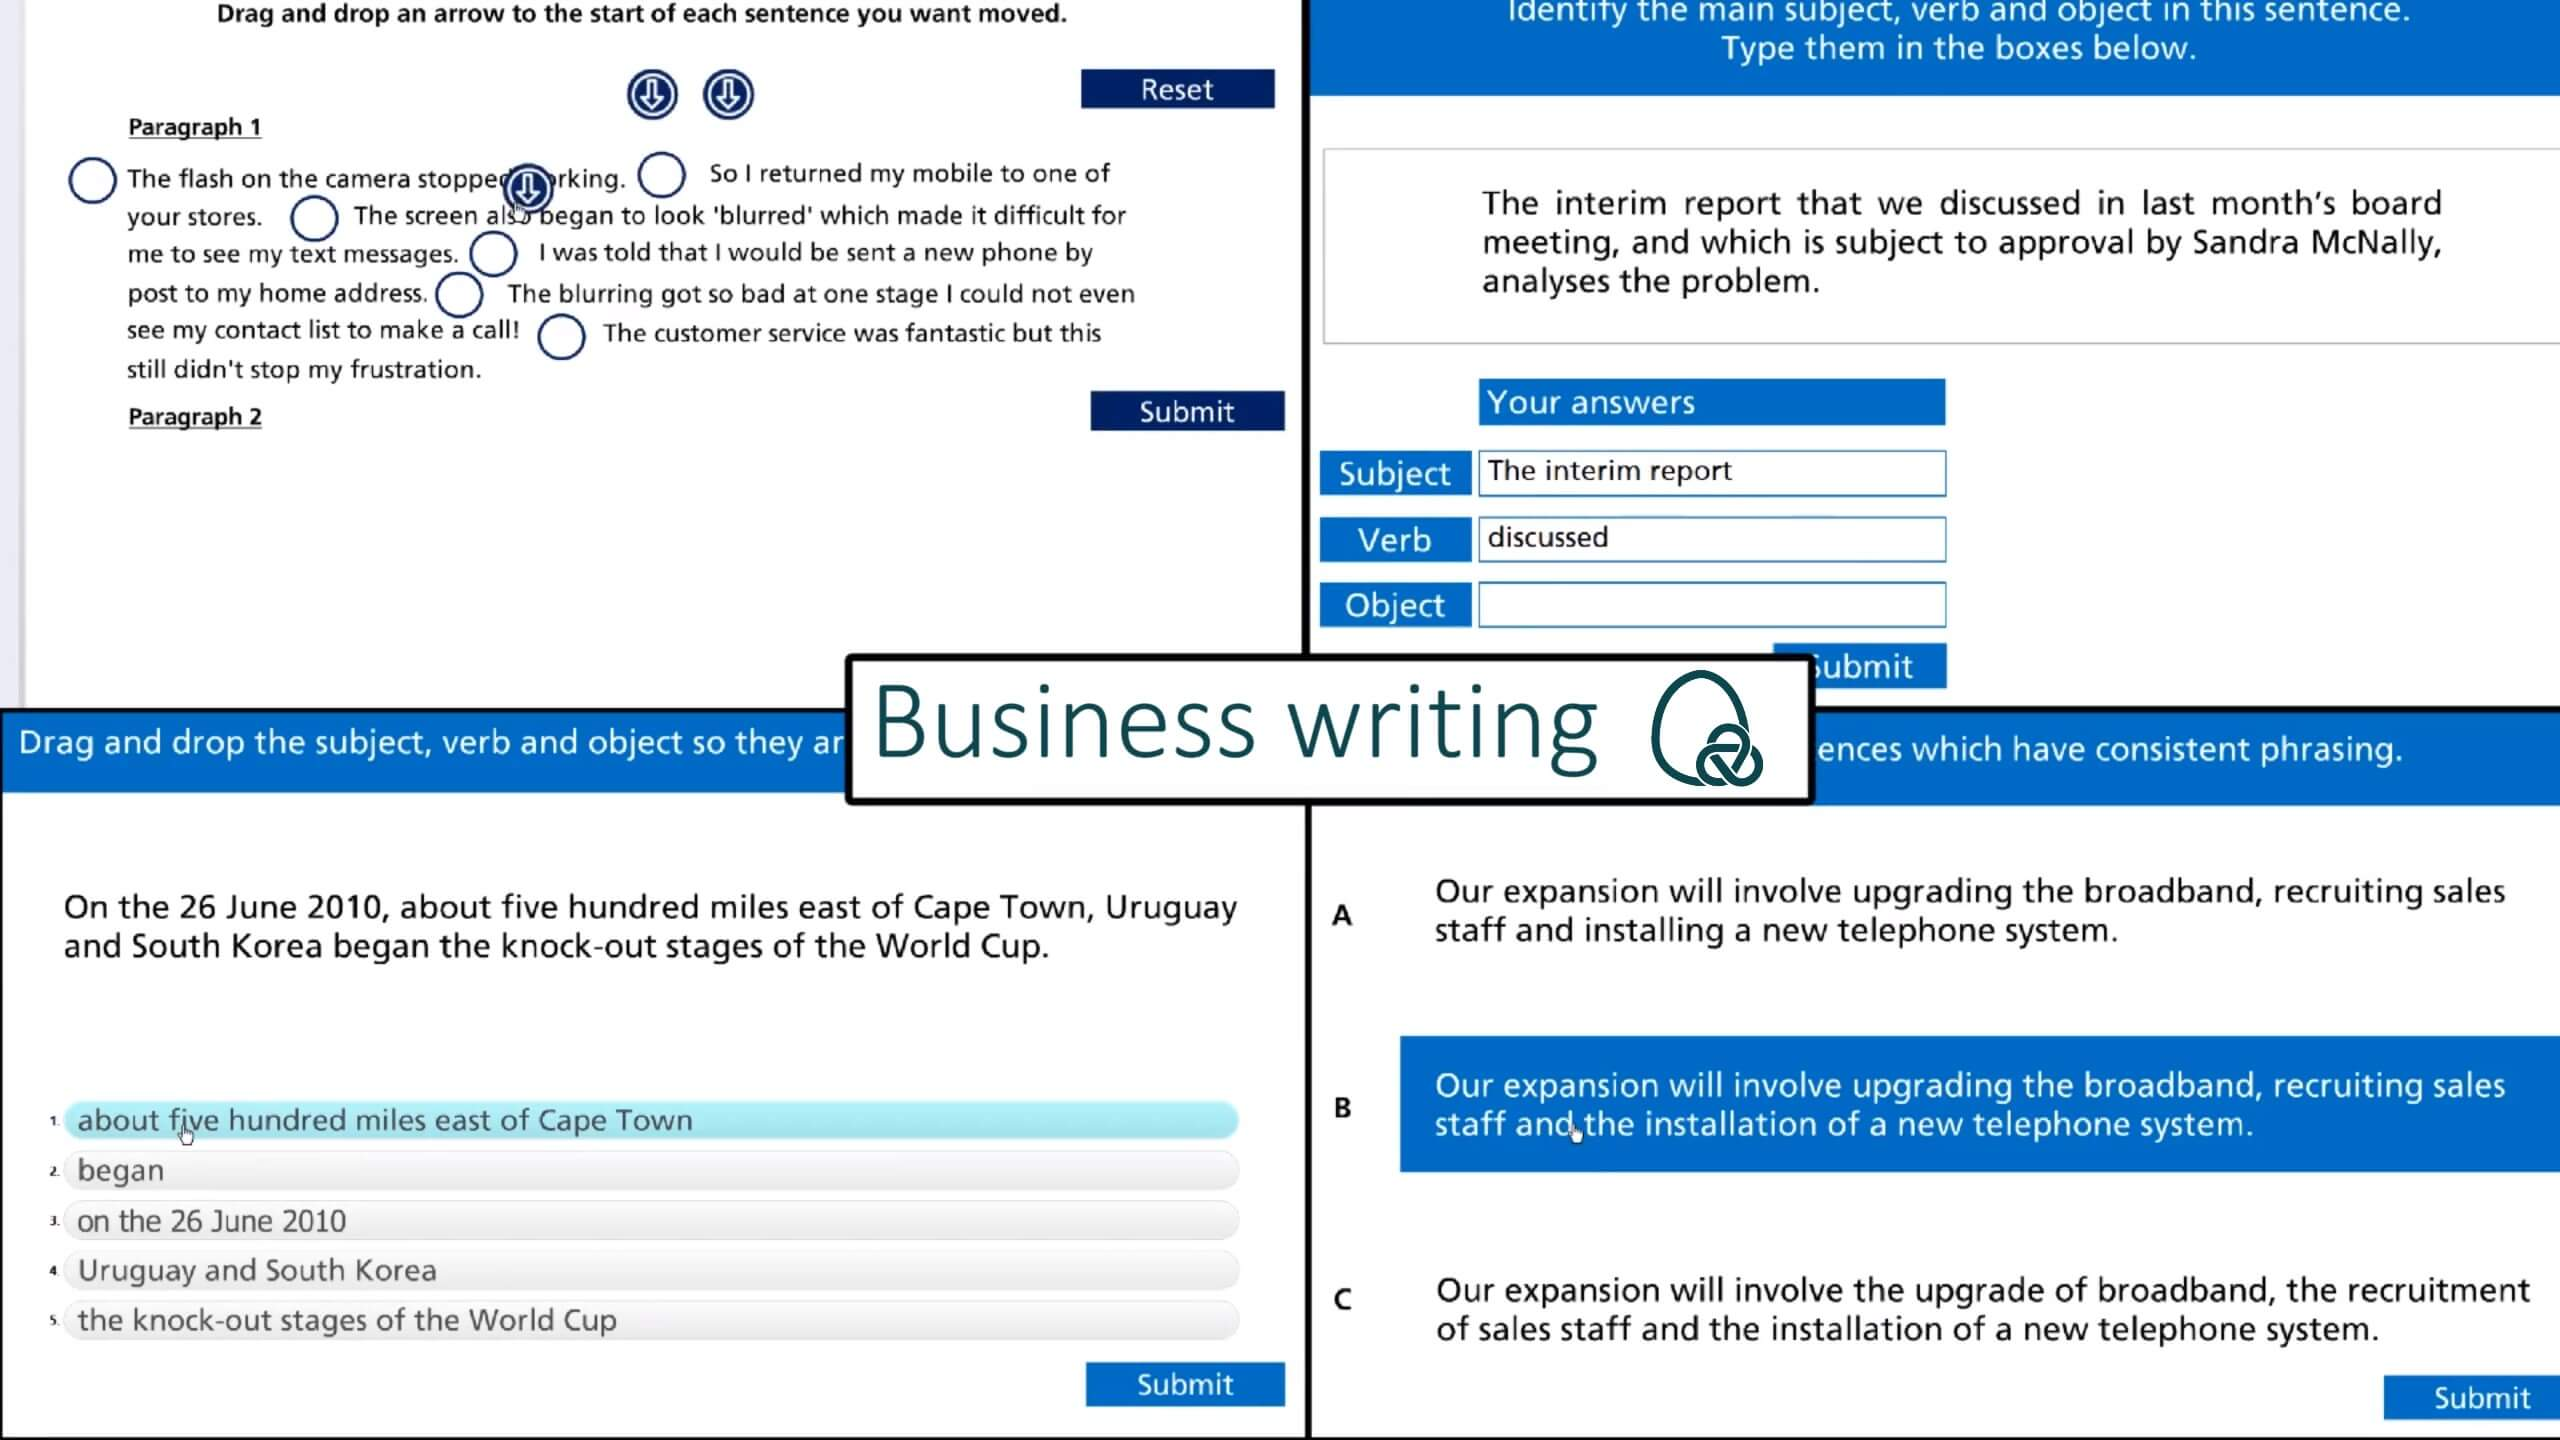 business writing for lawyers screenshot and trailer